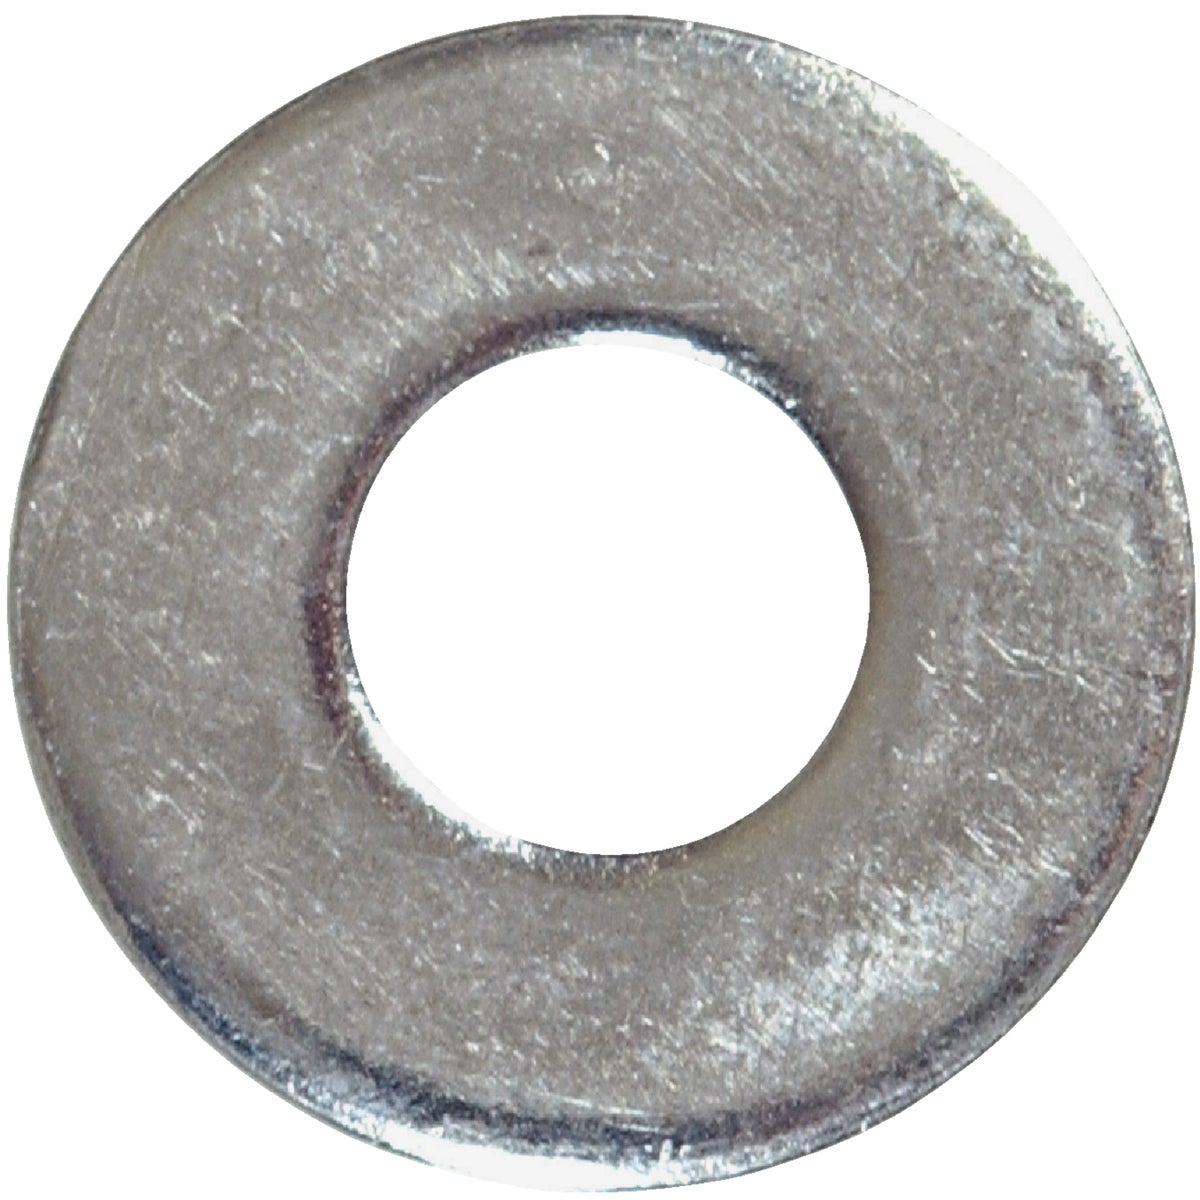 "5LB 1/2"" USS FLT WASHER - 270018 by Hillman Fastener"